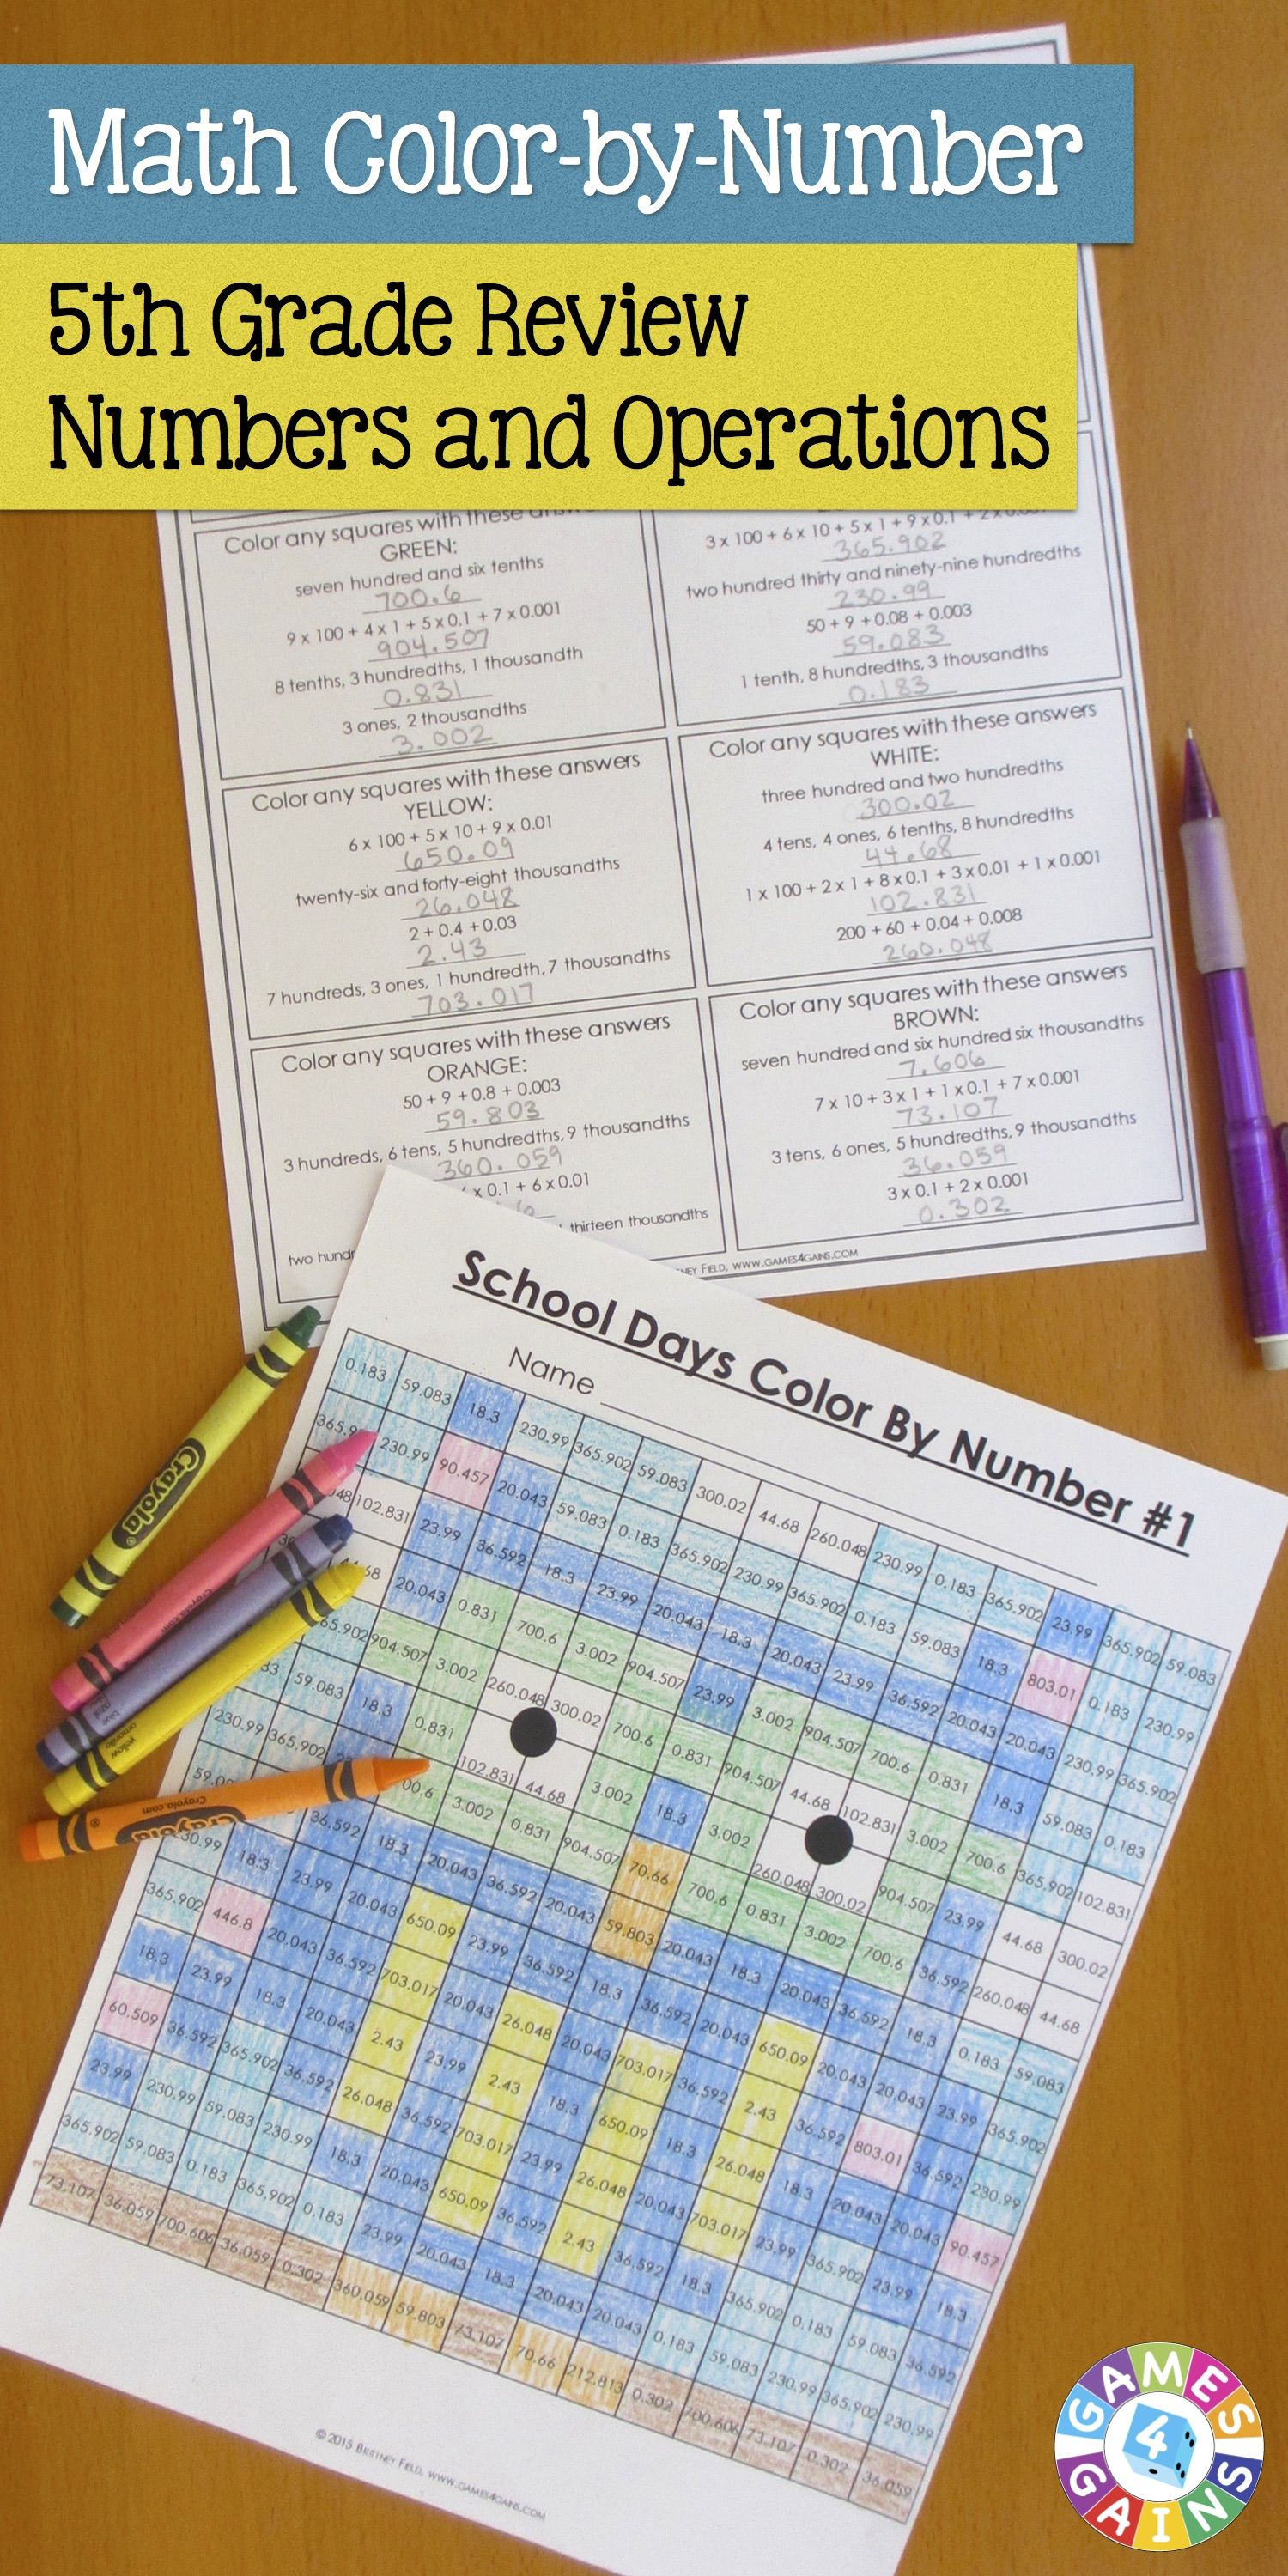 5th Grade Place Value Worksheets Also For 6th Grade Back To School Math Review